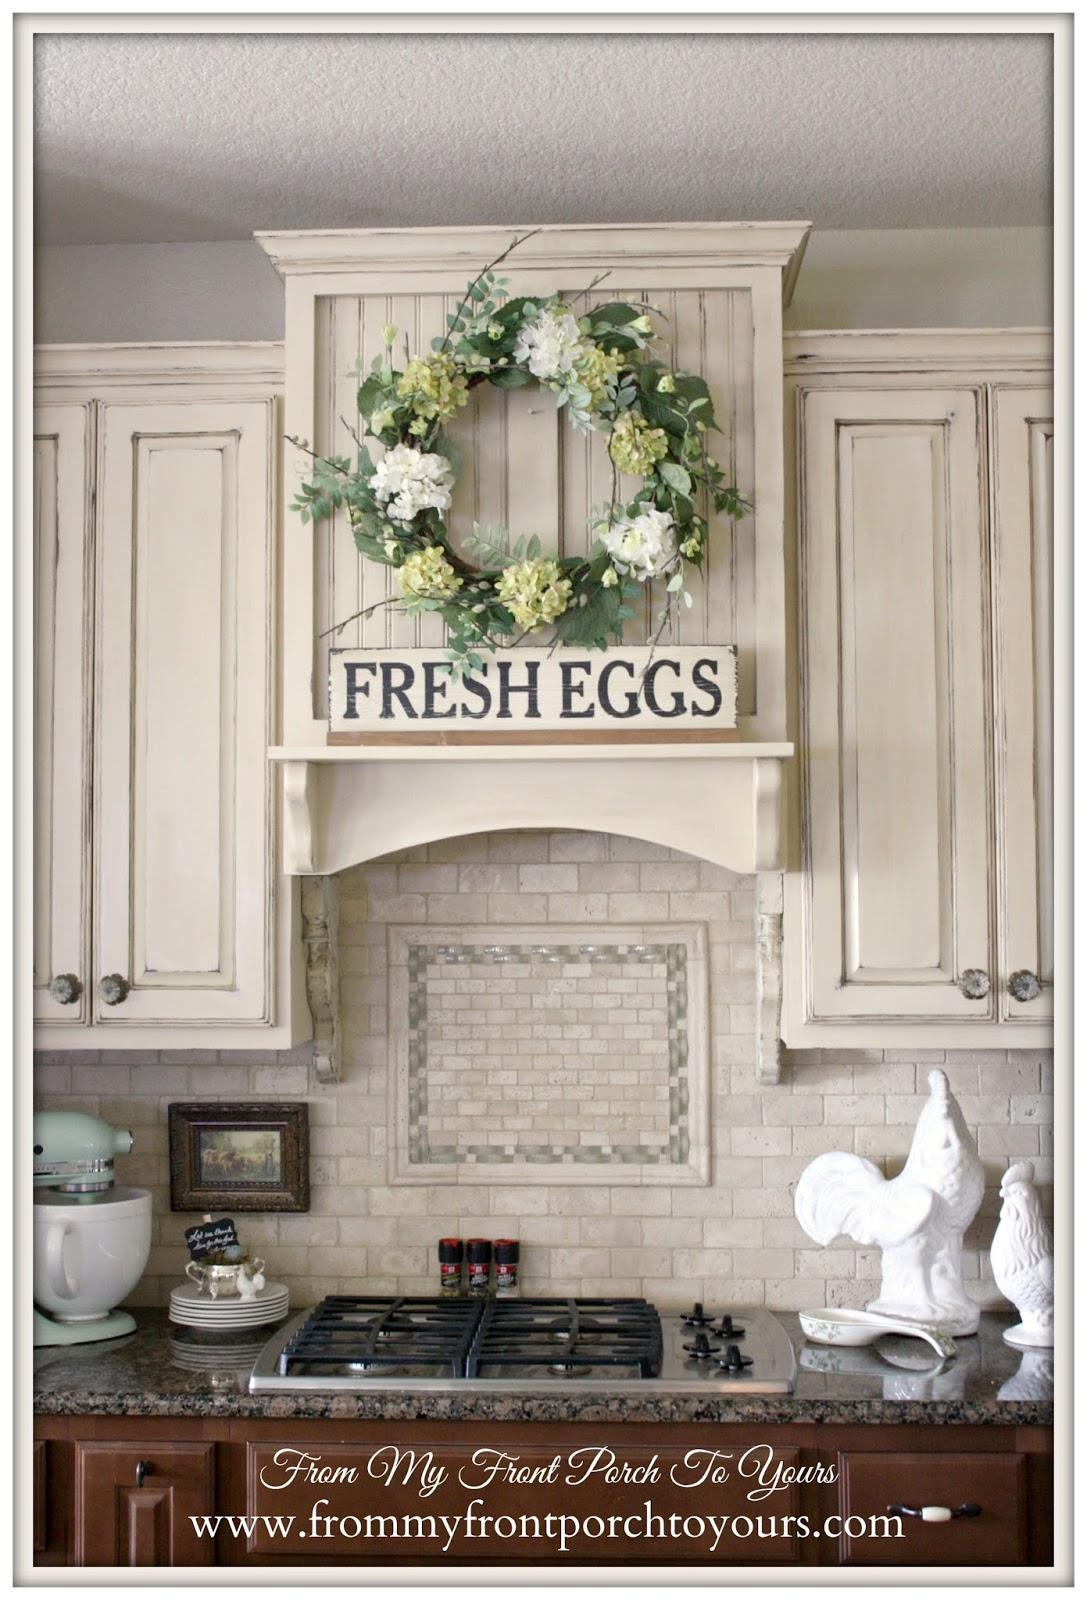 Anne Sloan Old Ochre-French Farmhouse Kitchen- From My Front Porch To Yours